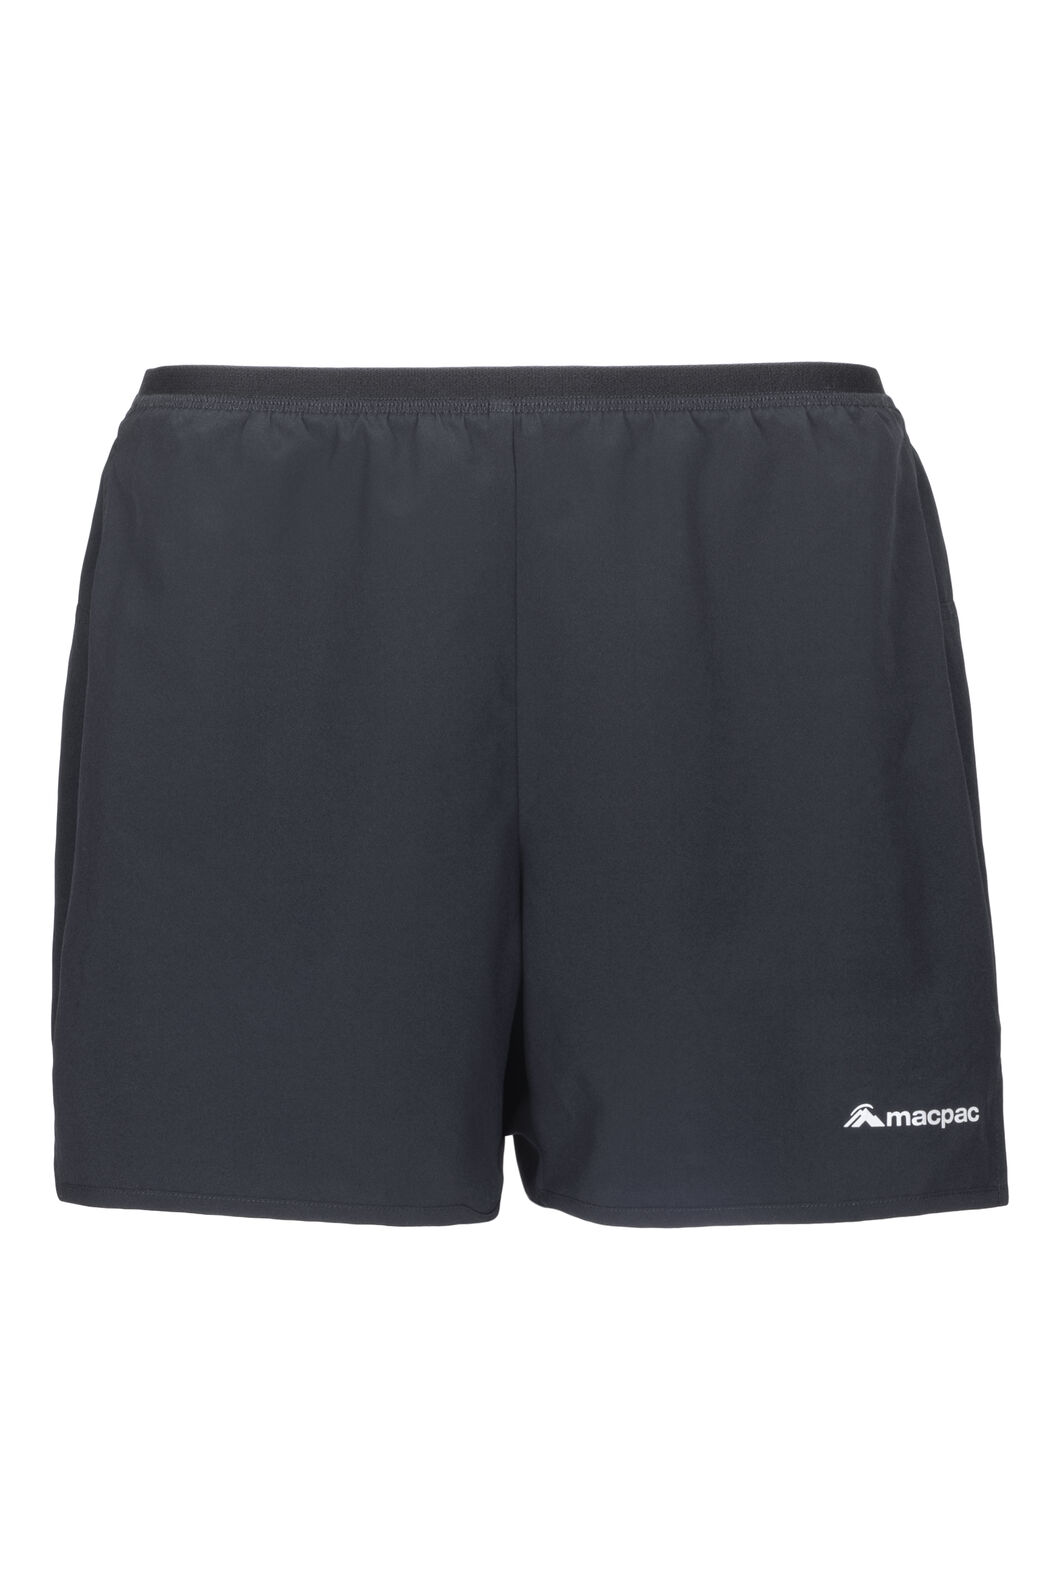 Macpac Caples Trail Shorts — Women's, Black, hi-res